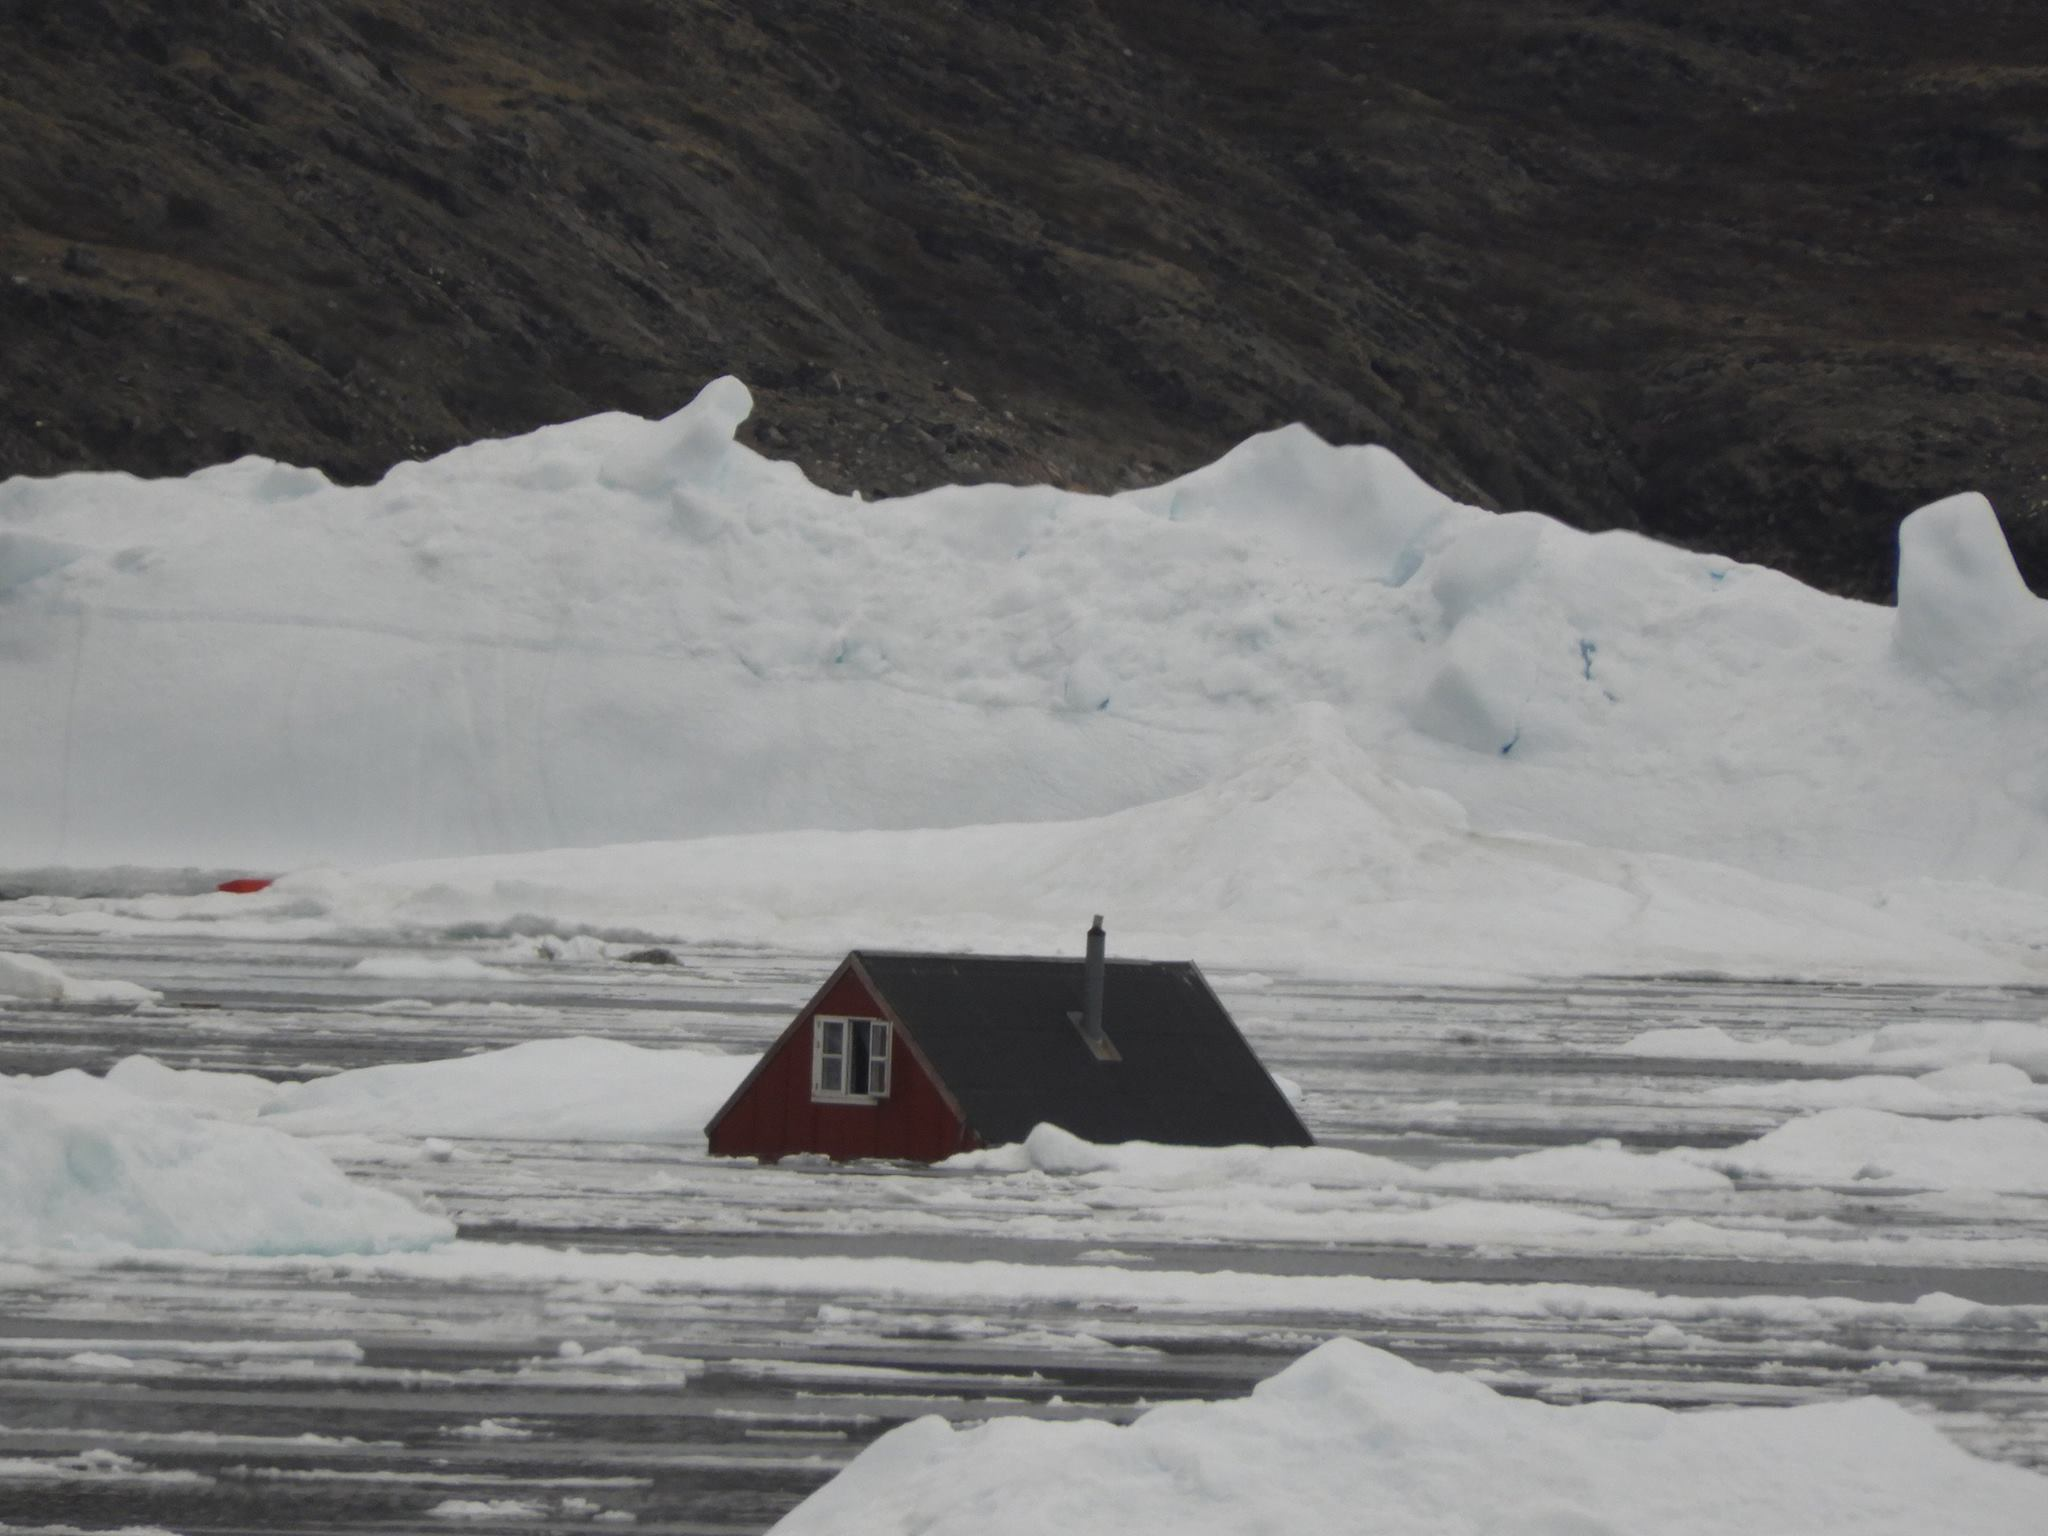 A flooded home in Nuugaatsiaq, after a tsunami struck the remote Greenland village. (Palle Lauritsen / Arctic Joint Command)